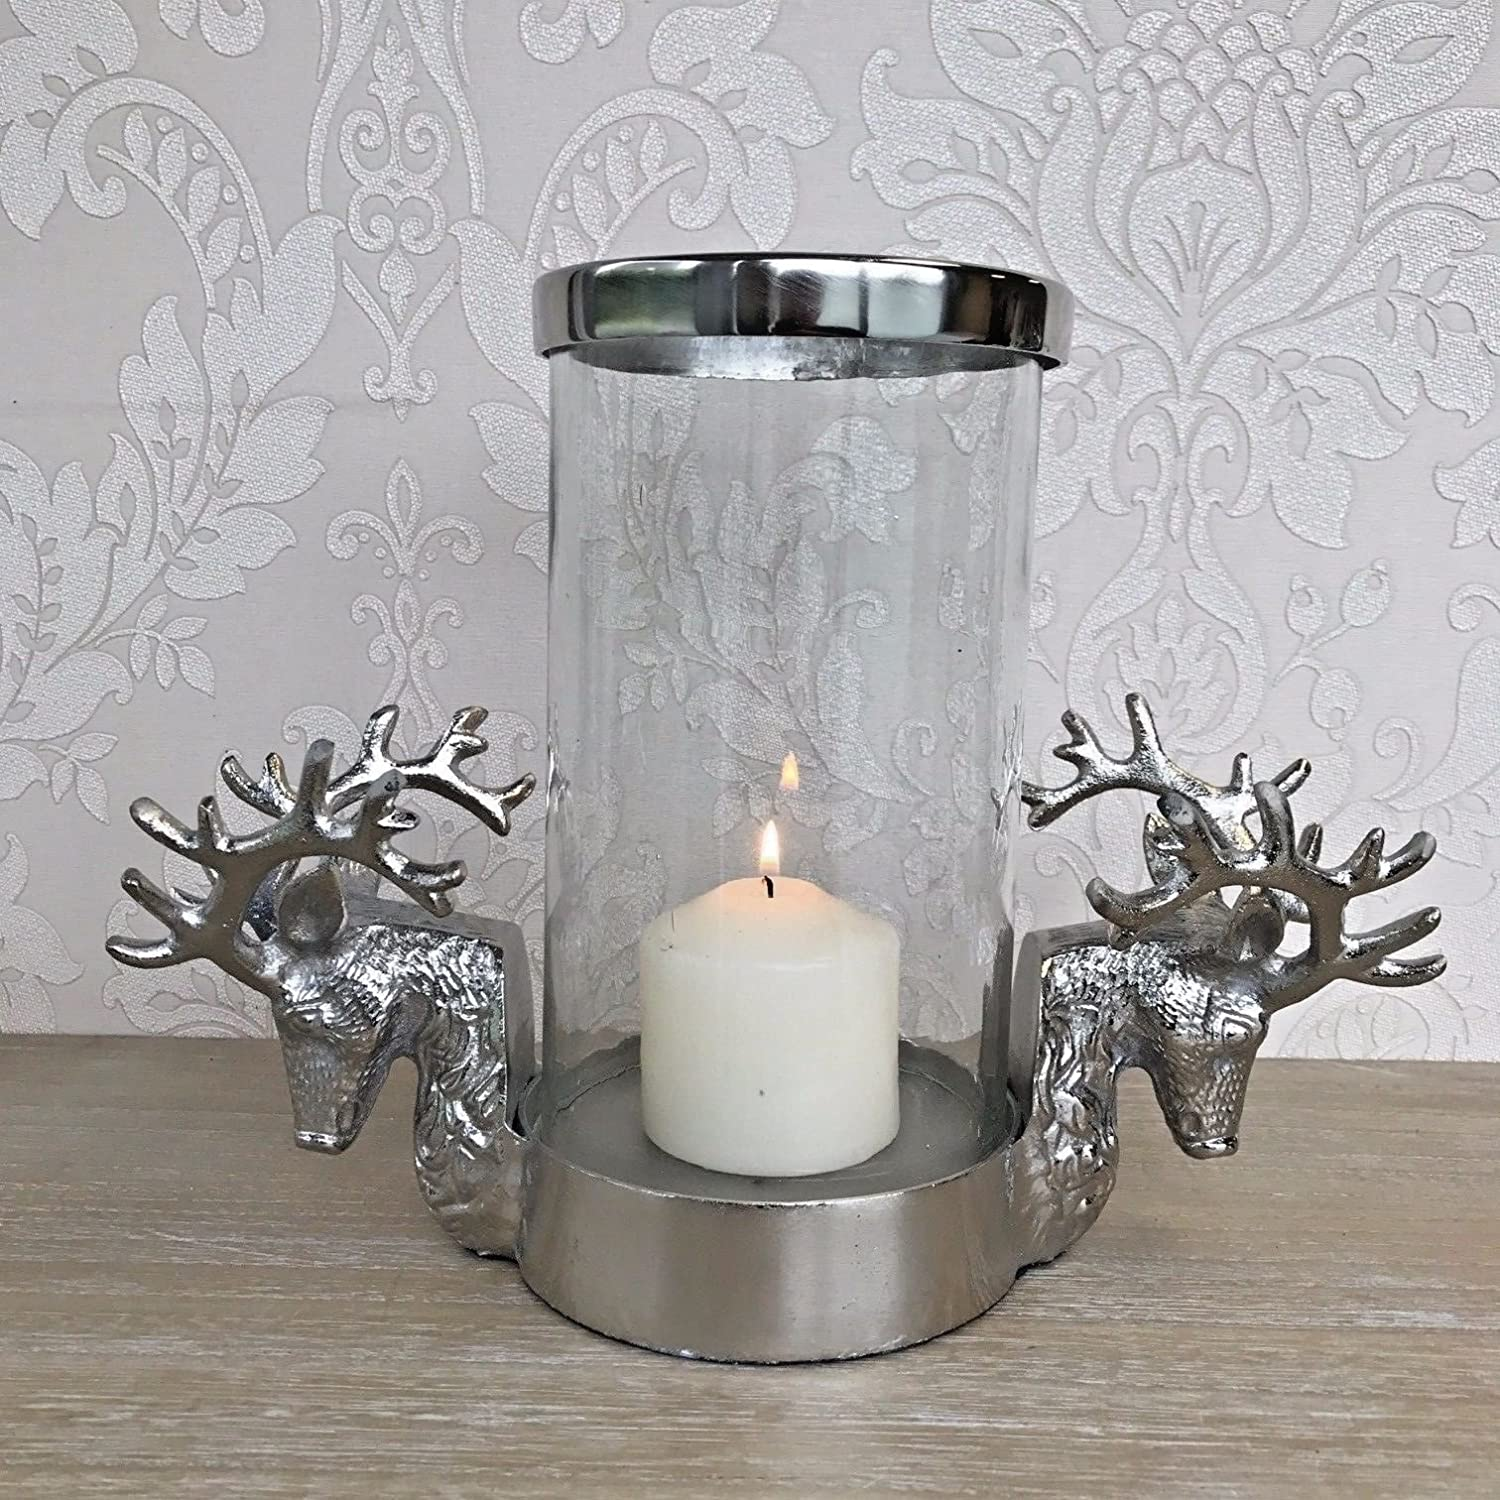 Oscar's Boutique Stag Head Antler Candle Holder Glass Shabby Chic Vintage Style Home Gift Oscar's Boutique